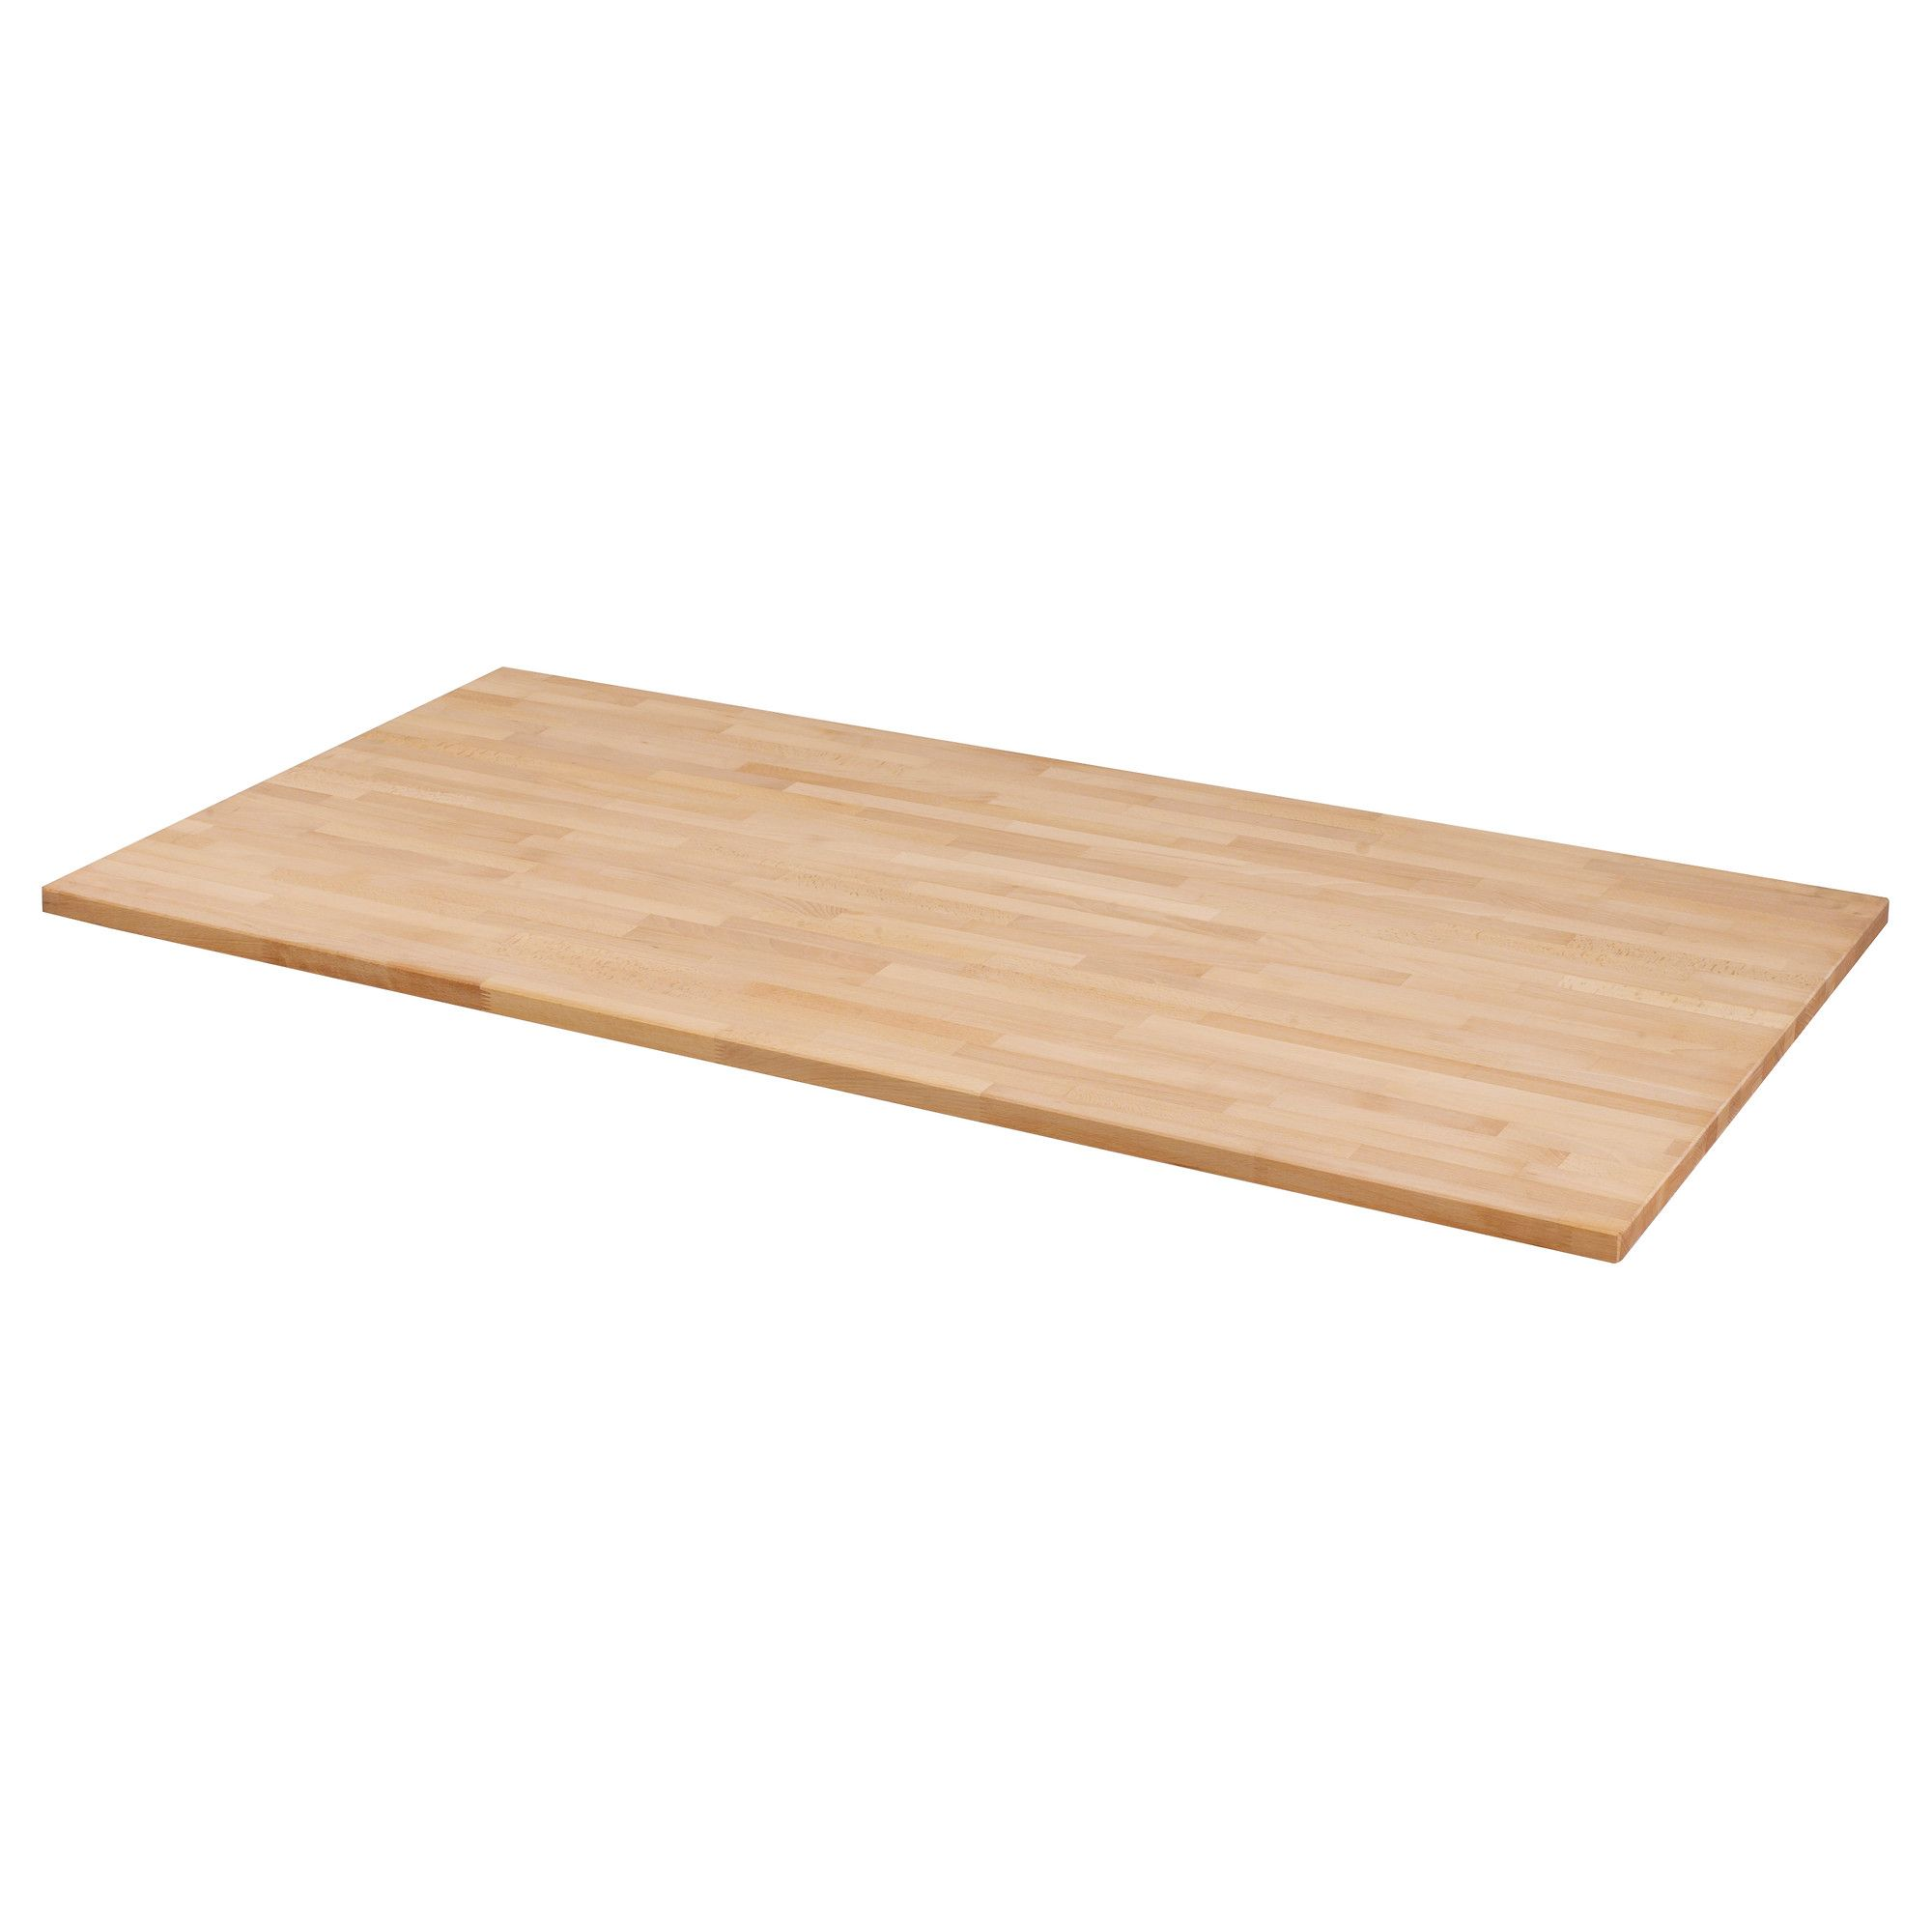 Gerton Tabletop Beech 61x29 1 2 Ikea Ikea Table Tops Table Top Ikea